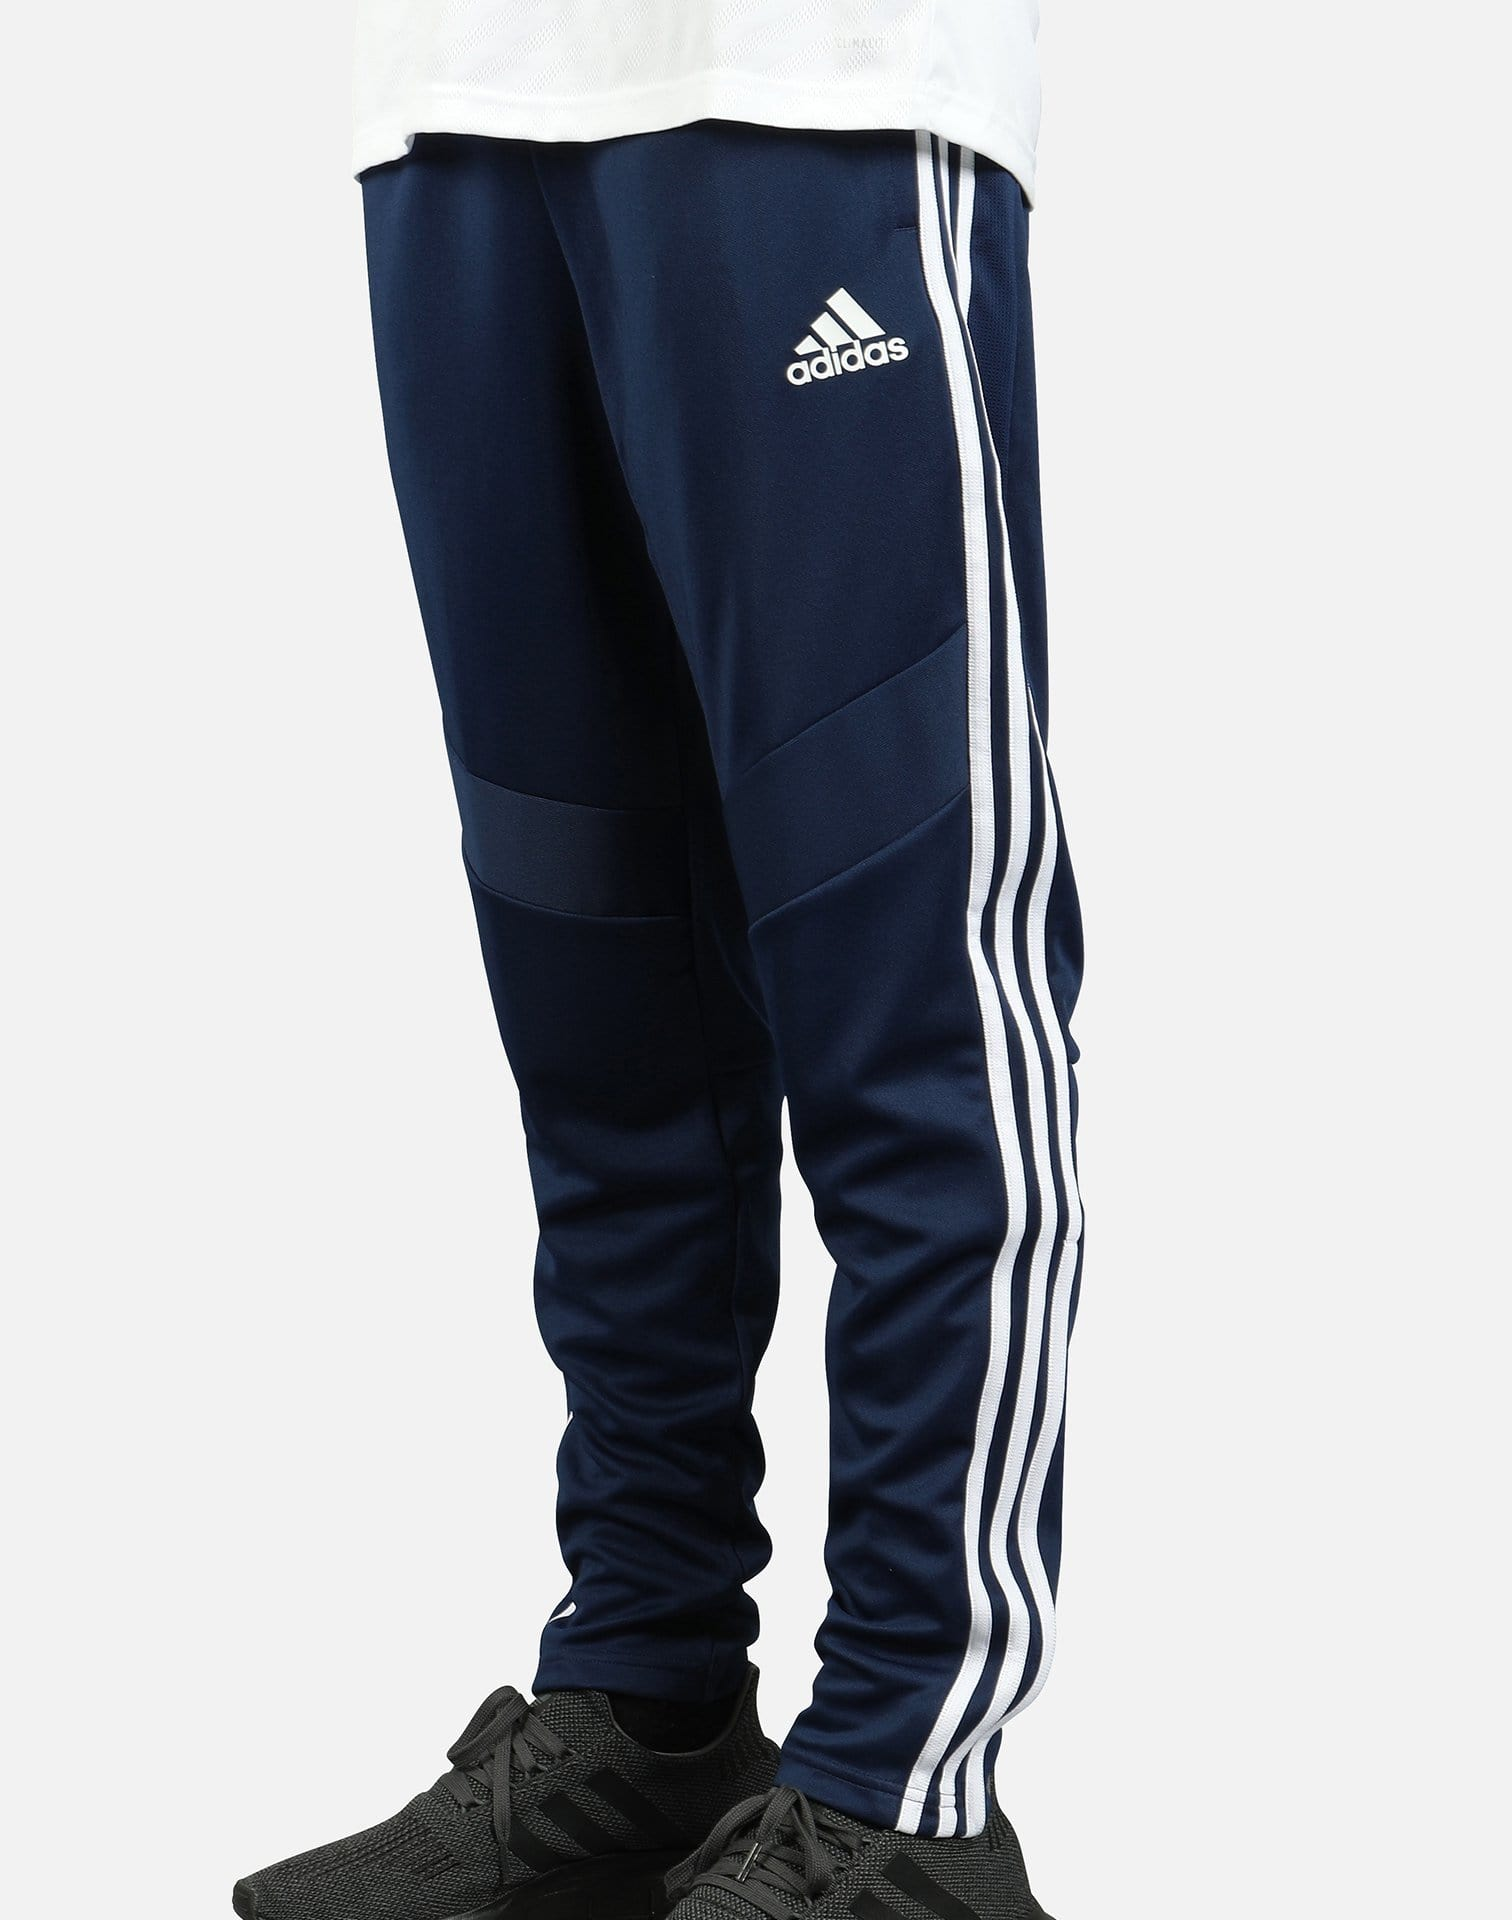 adidas Men's Tiro 19 Training Pants